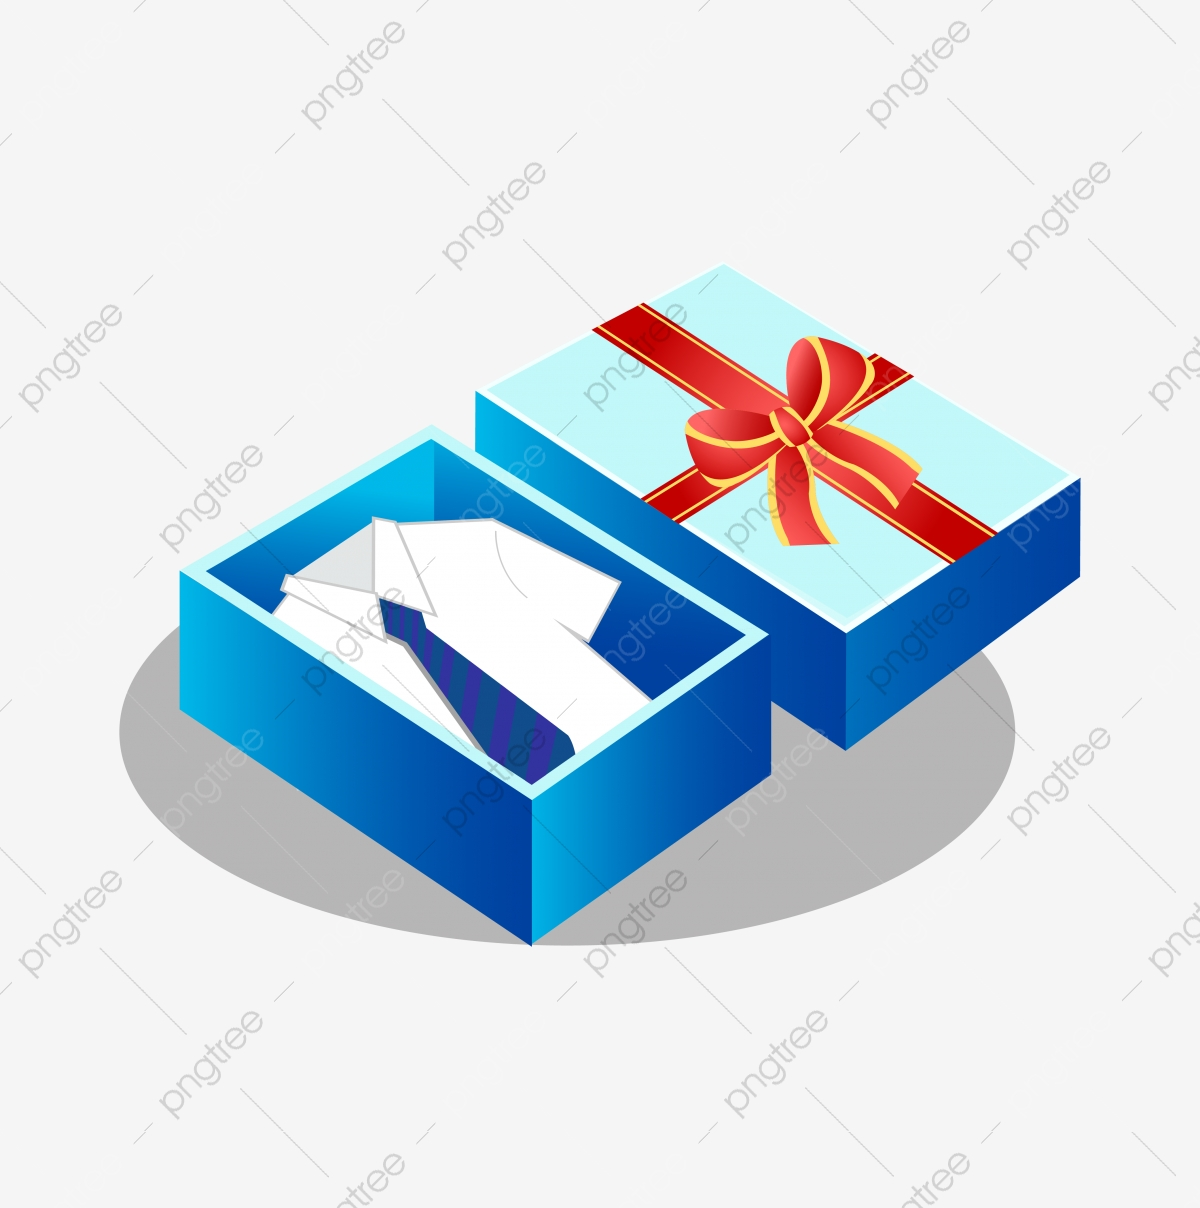 Opened gift box Vector Image - 1934263 | StockUnlimited